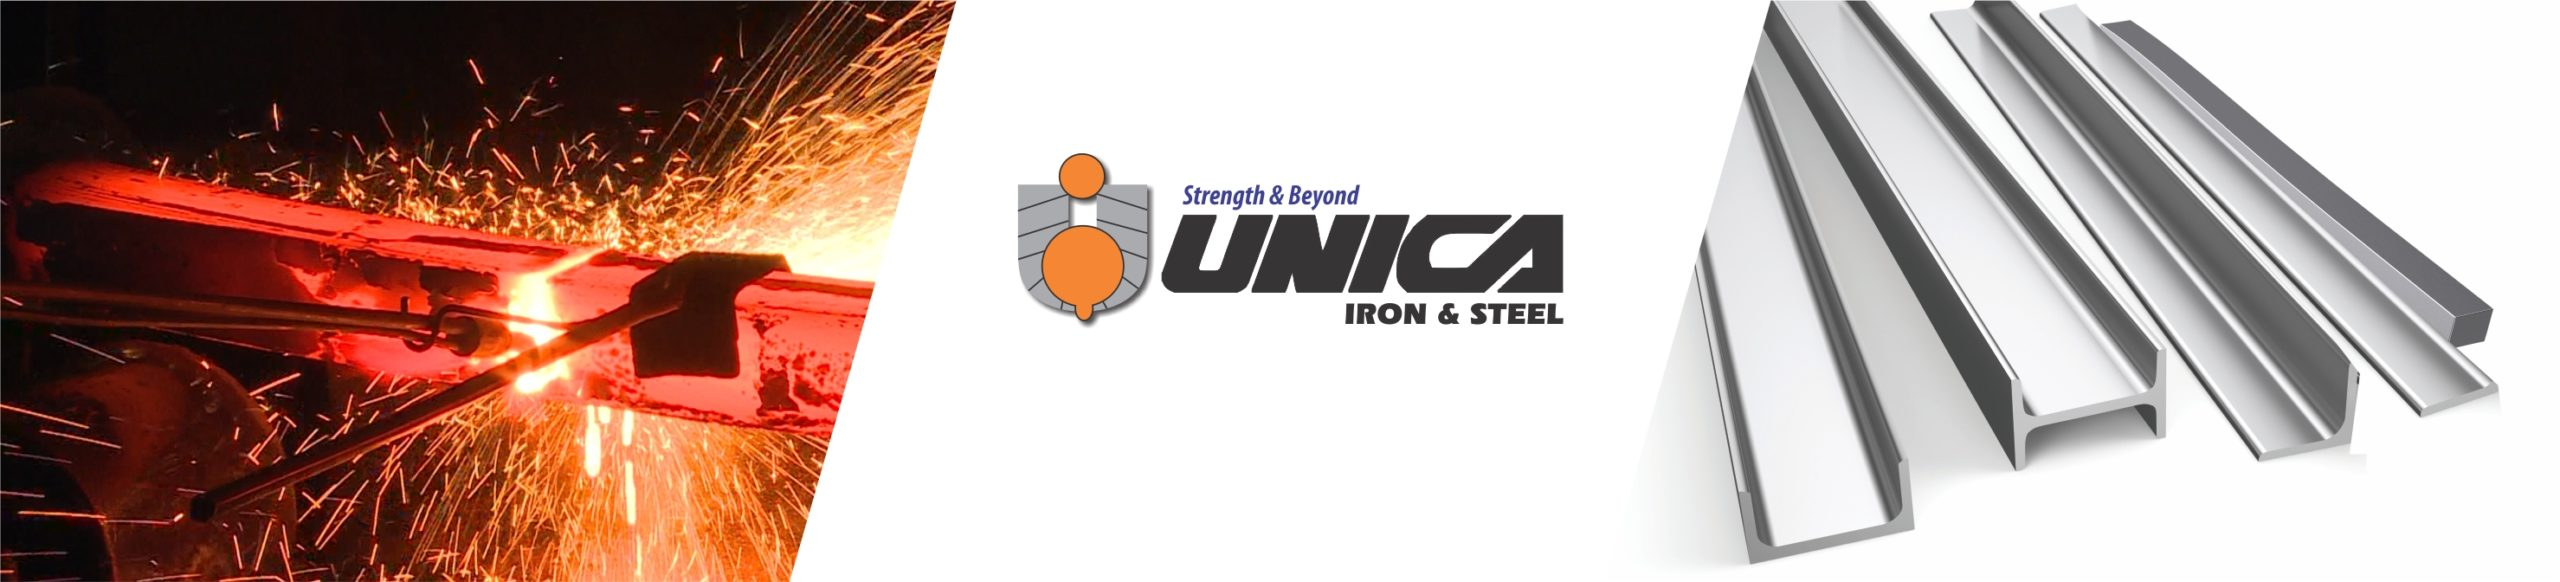 Unica Iron and Steel